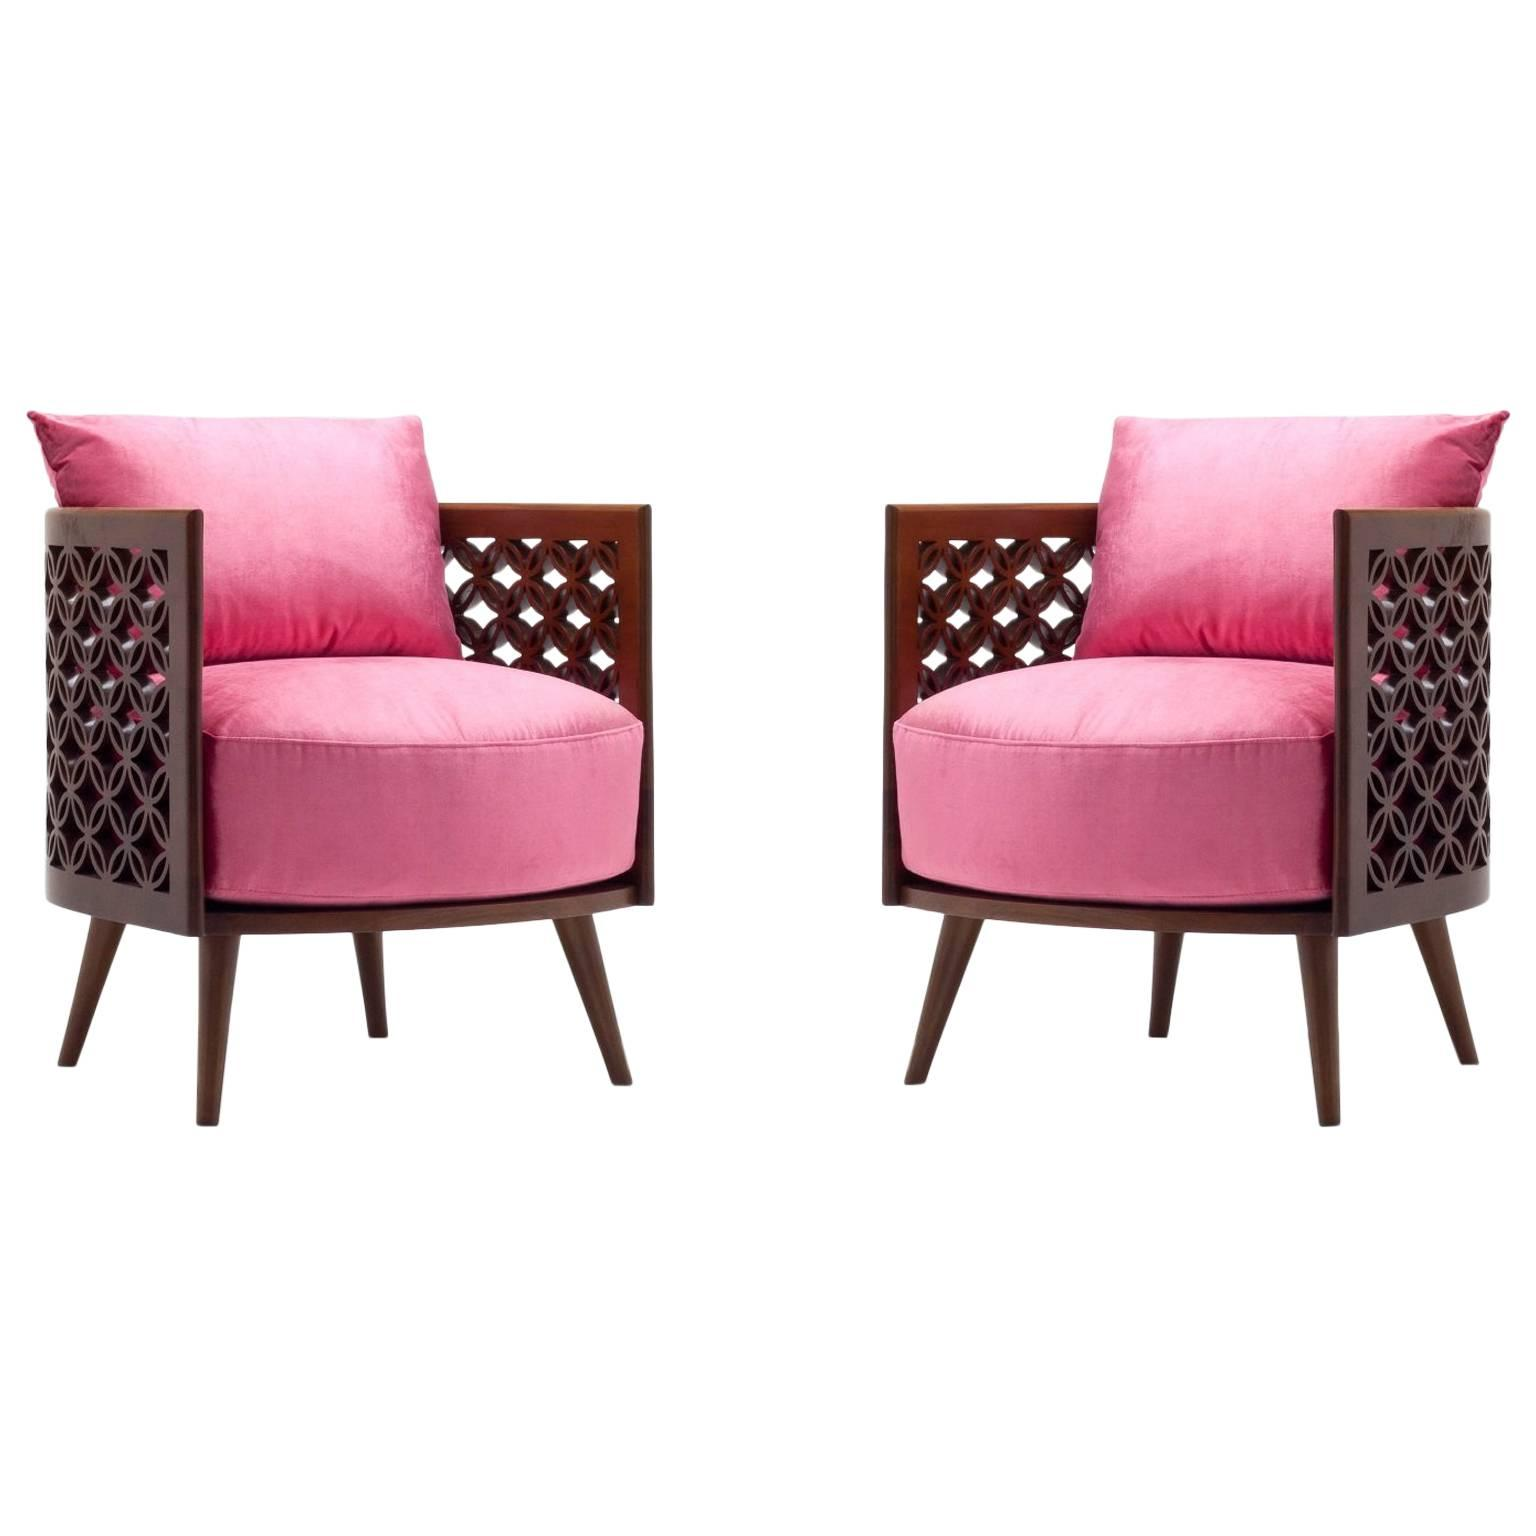 Arabesque Modern Armchairs by Nada Debs, Contemporary Armchair in Walnut  For Sale